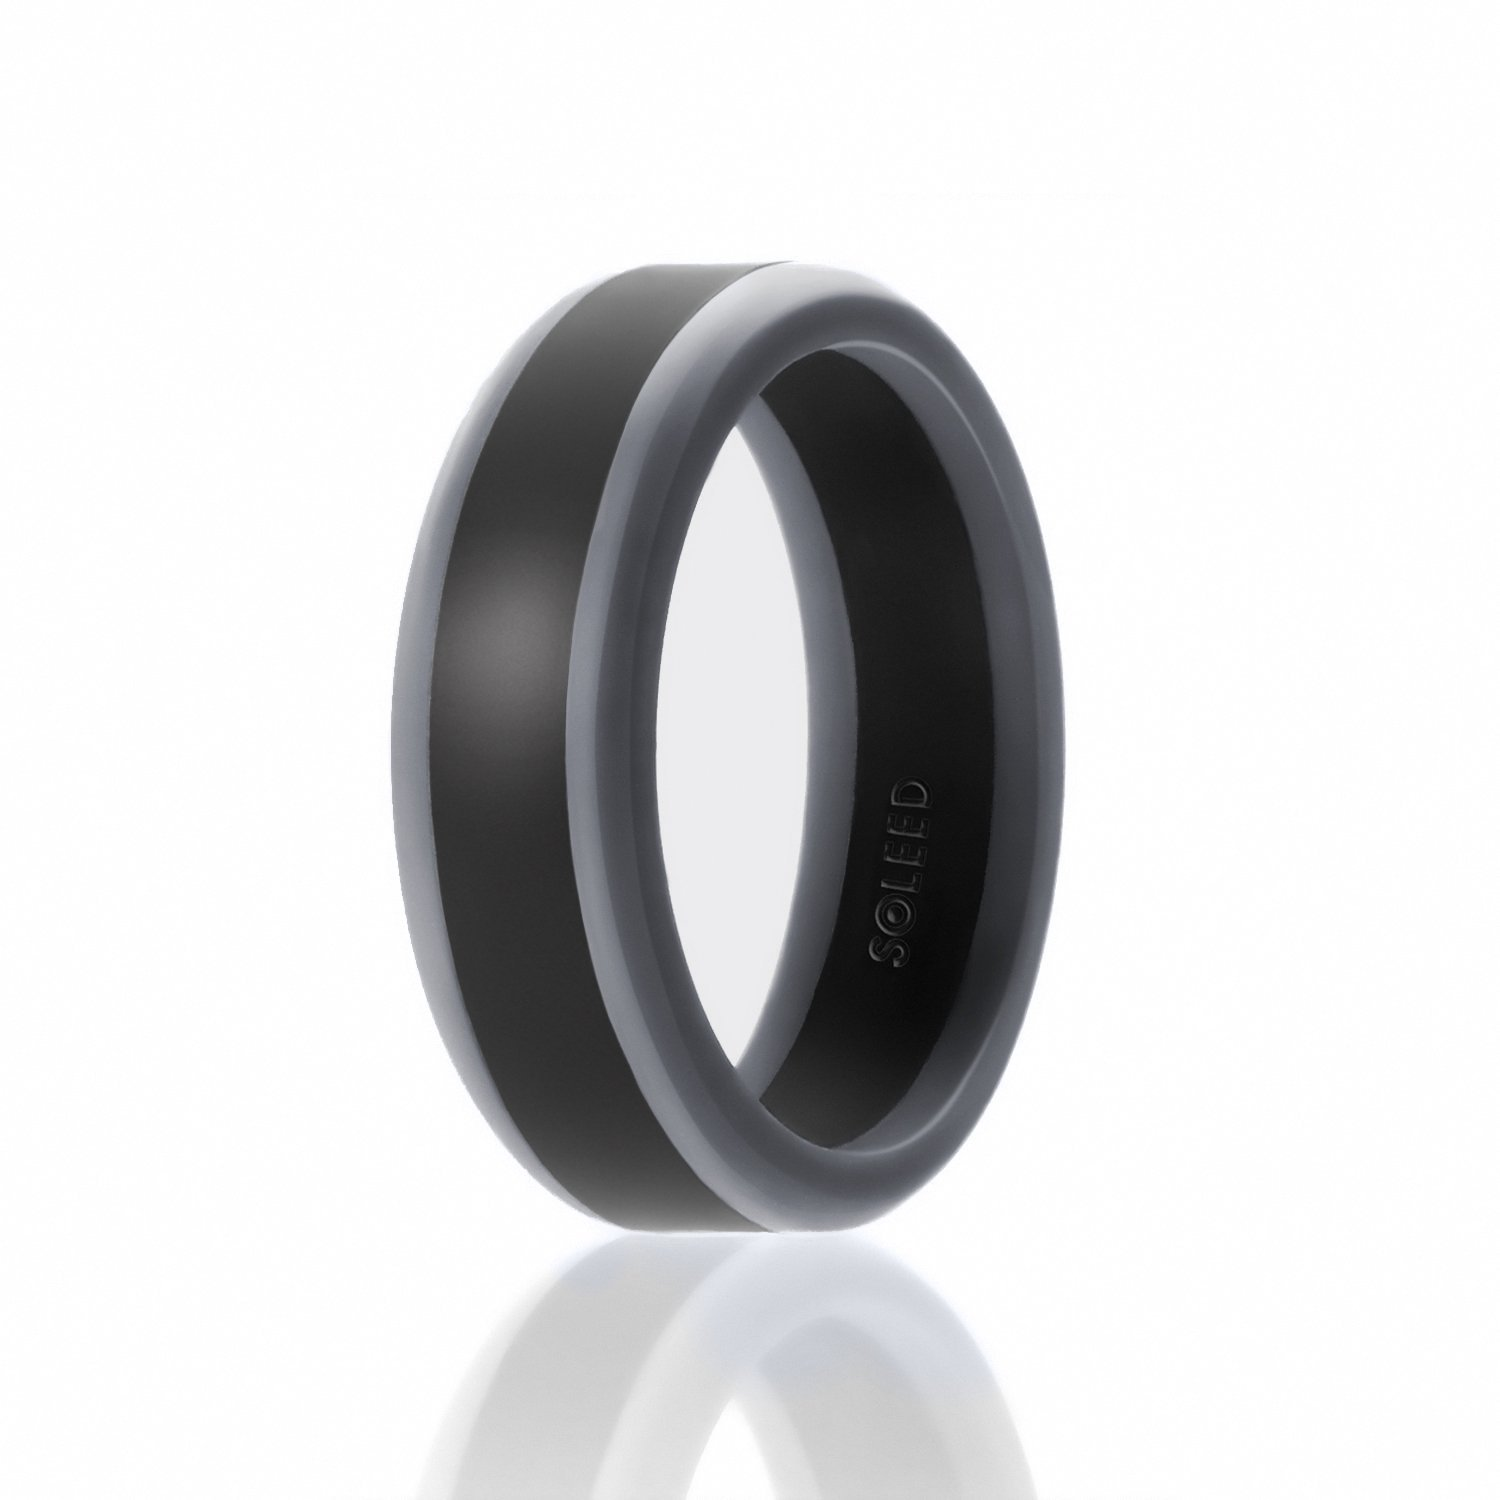 SOLEED Silicone Wedding Ring for Men (Power X Series) Safe and Sturdy Silicone Rubber Wedding Band Middle Wide Stripe with Black Beveled Edges - Metallic, Silver, Platinum, Grey, Blue, Red